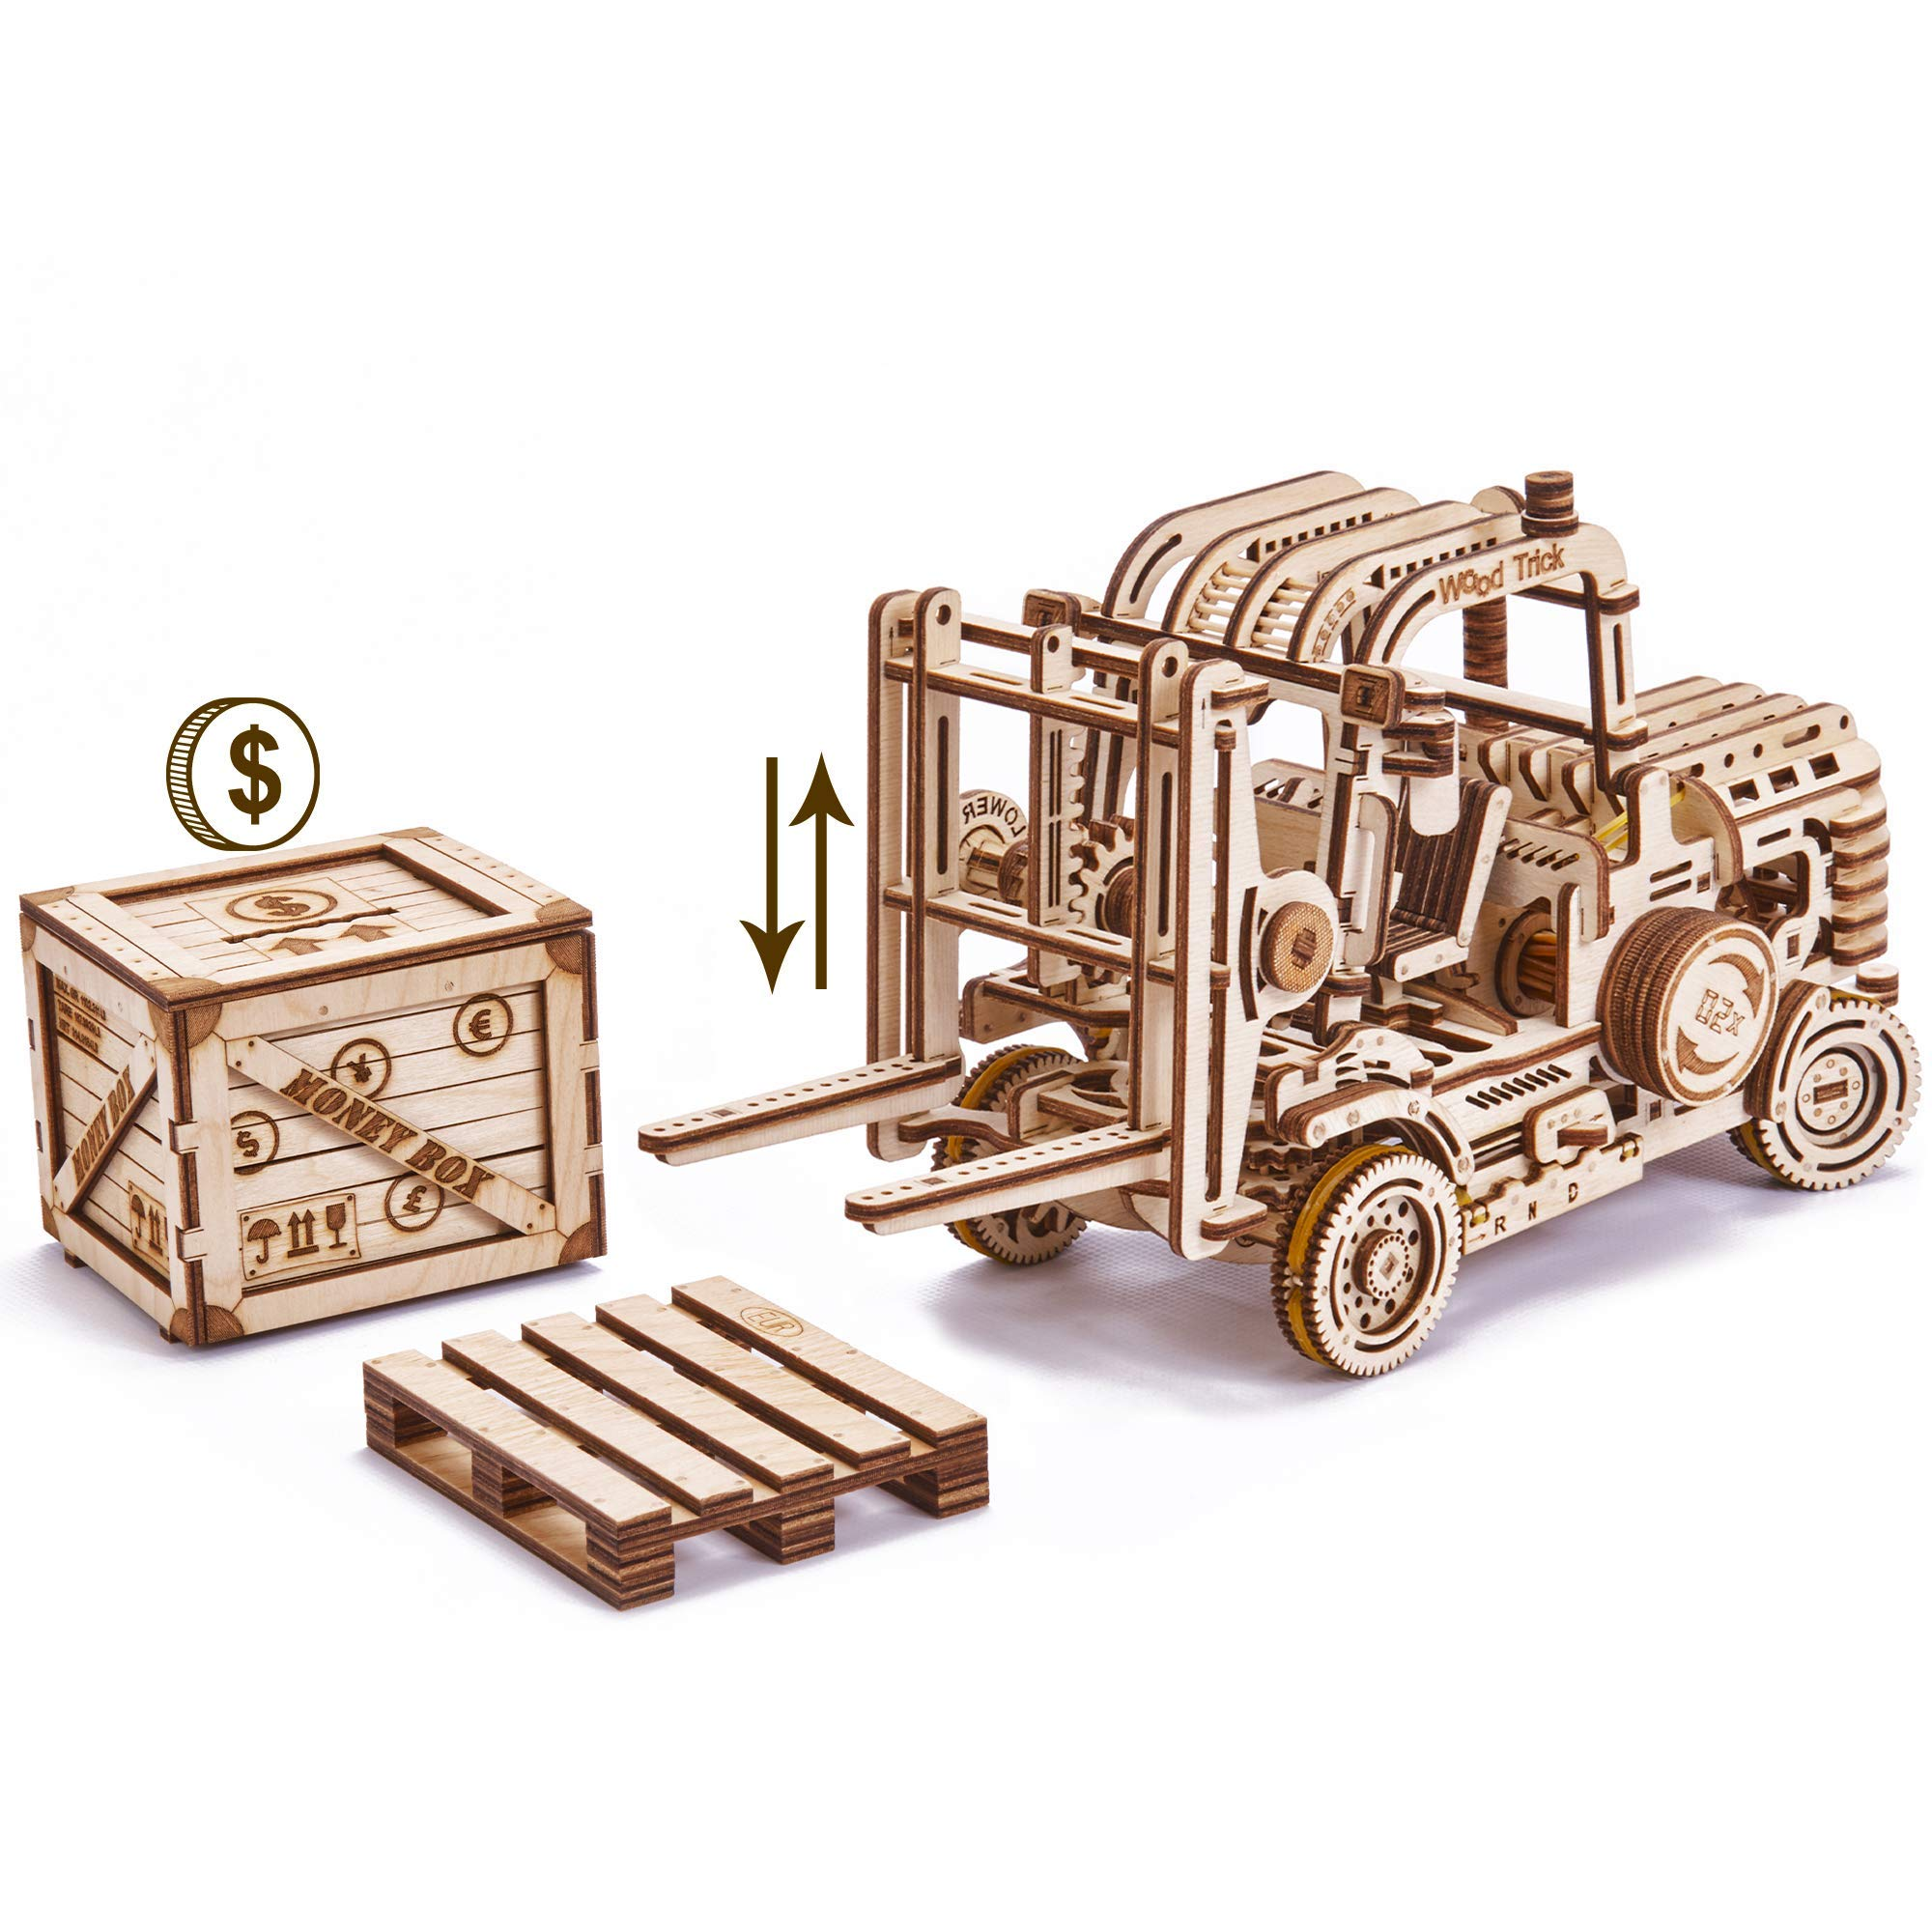 Wood Trick Forklift Toy Set + Money Box, Forklift Truck with Pallet and Cargo - Friction Powered & Manual Lifting Control - 3D Wooden Puzzle, Brain Teaser - STEM Toys